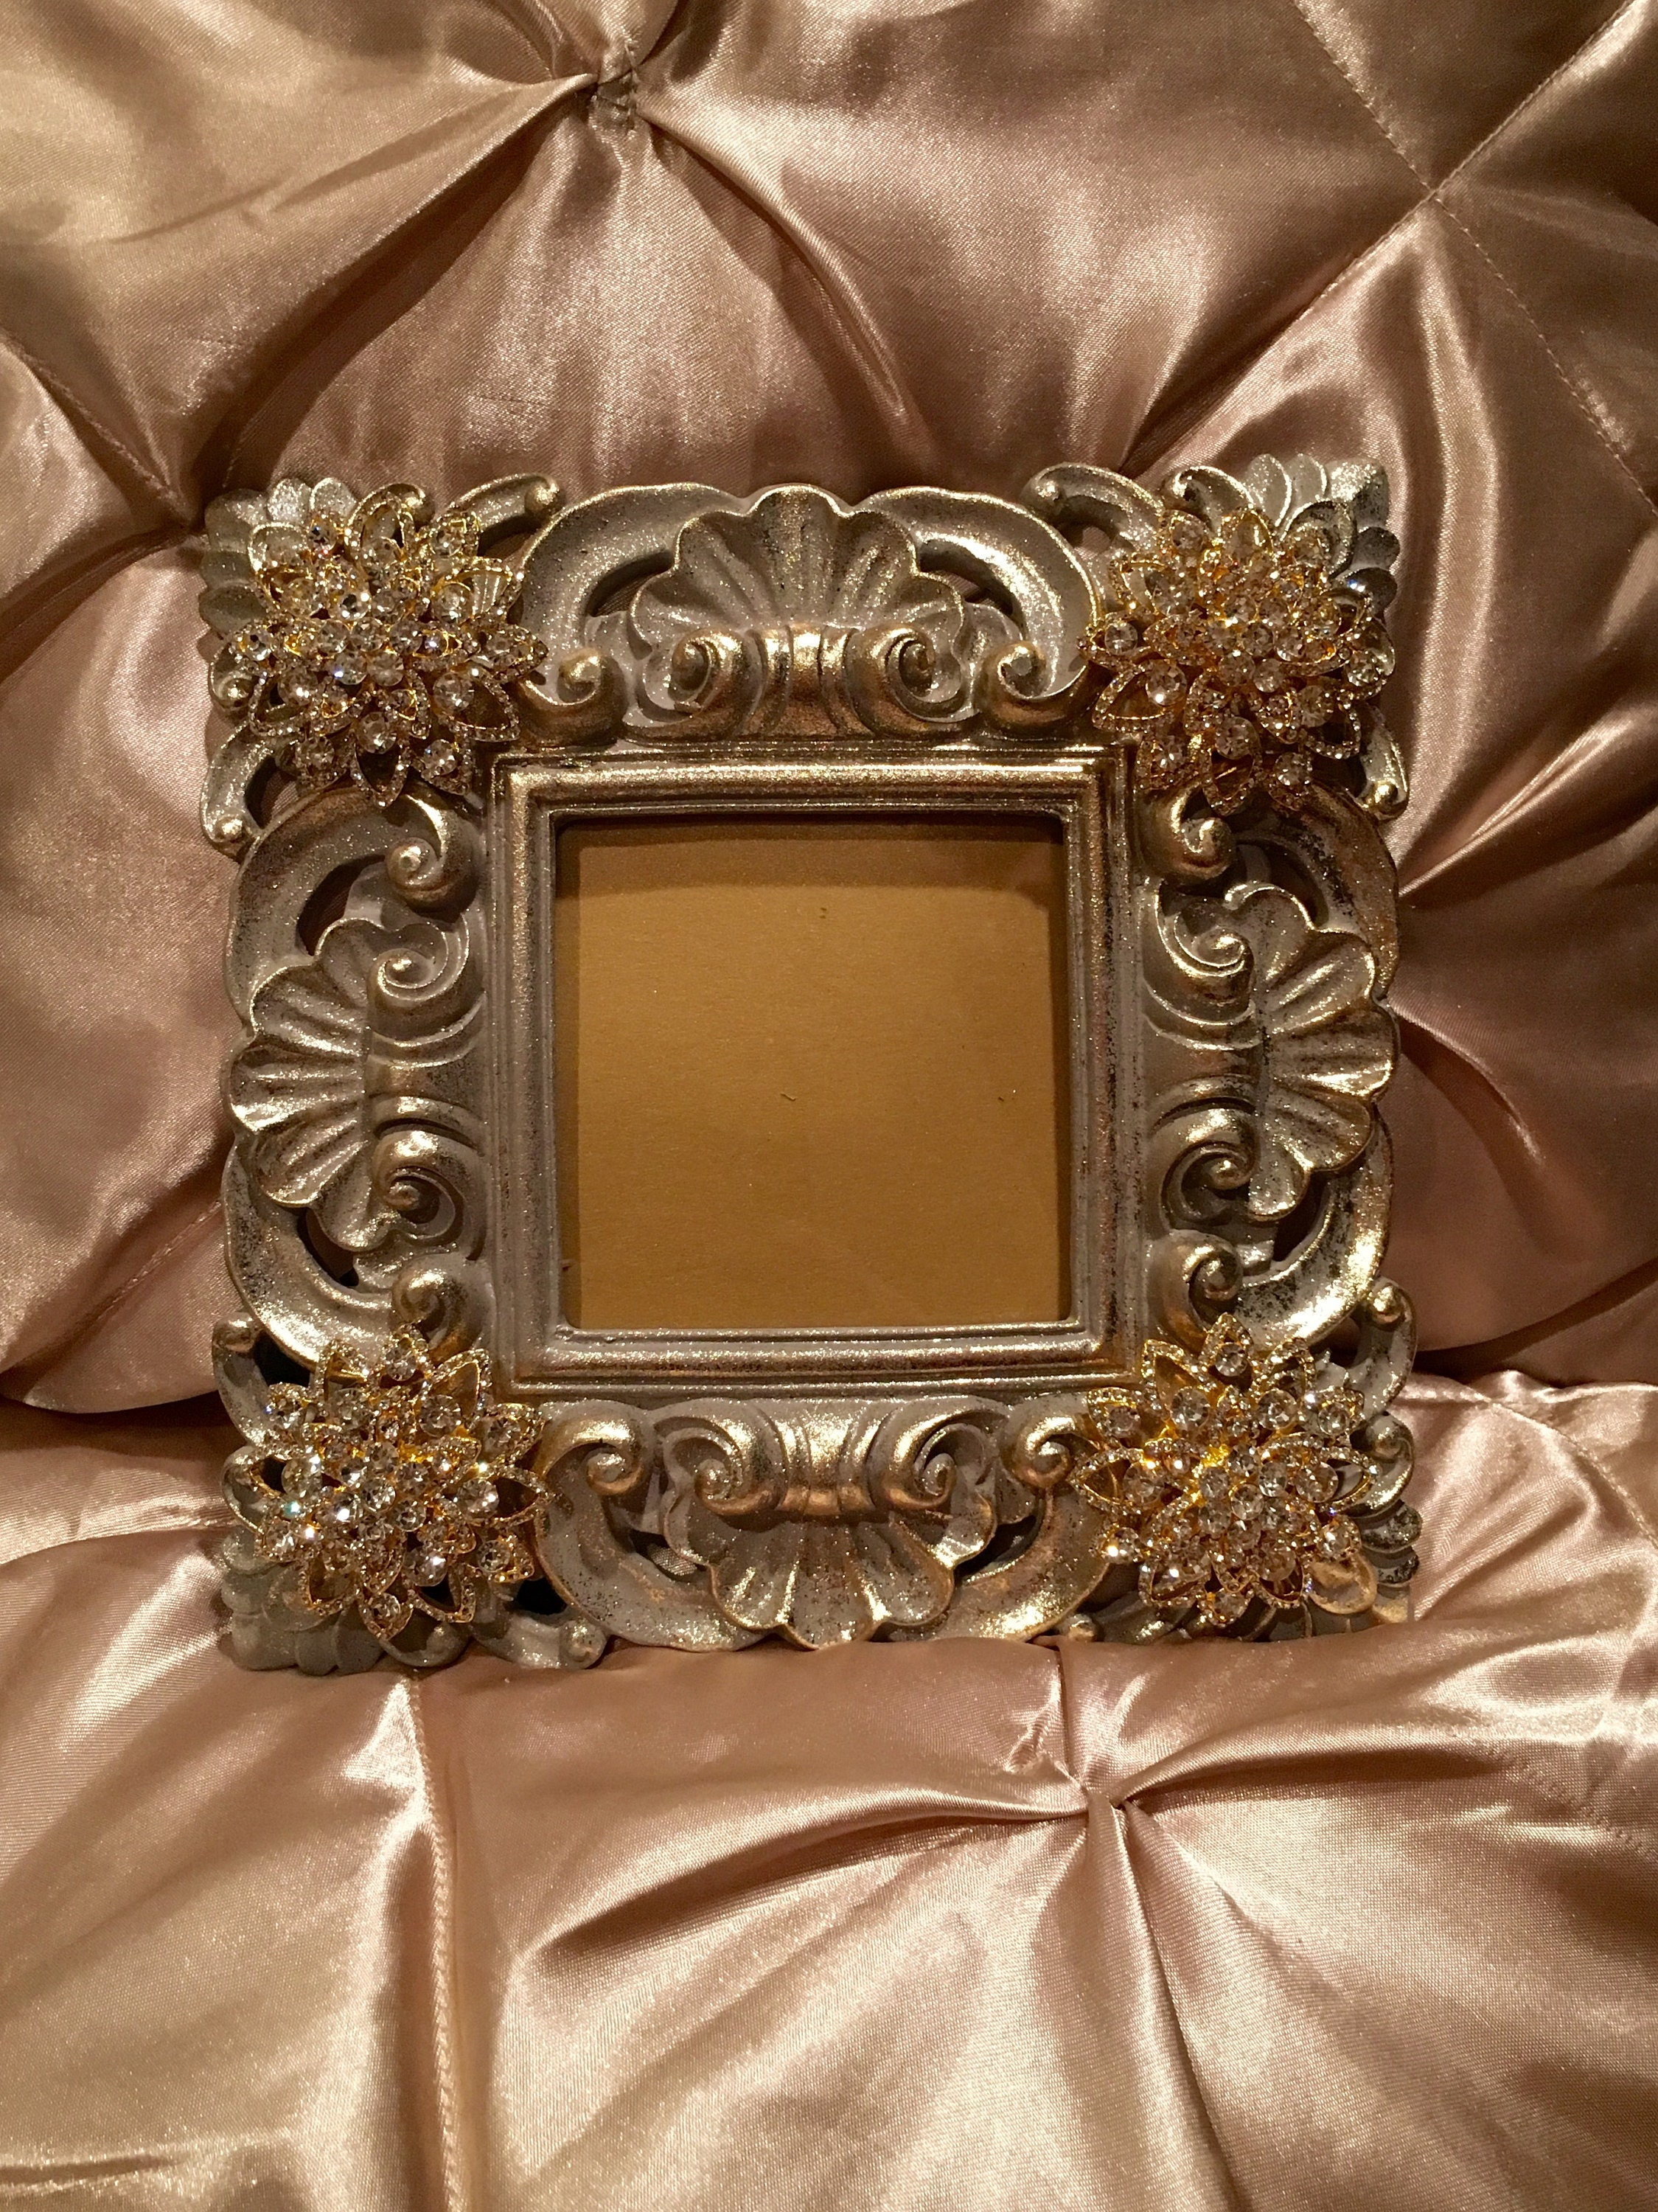 bacb3eb4996 Gray and gold fancy picture frame with beautiful genuine crystal accents  jpg 2249x3000 Beautiful gold frames